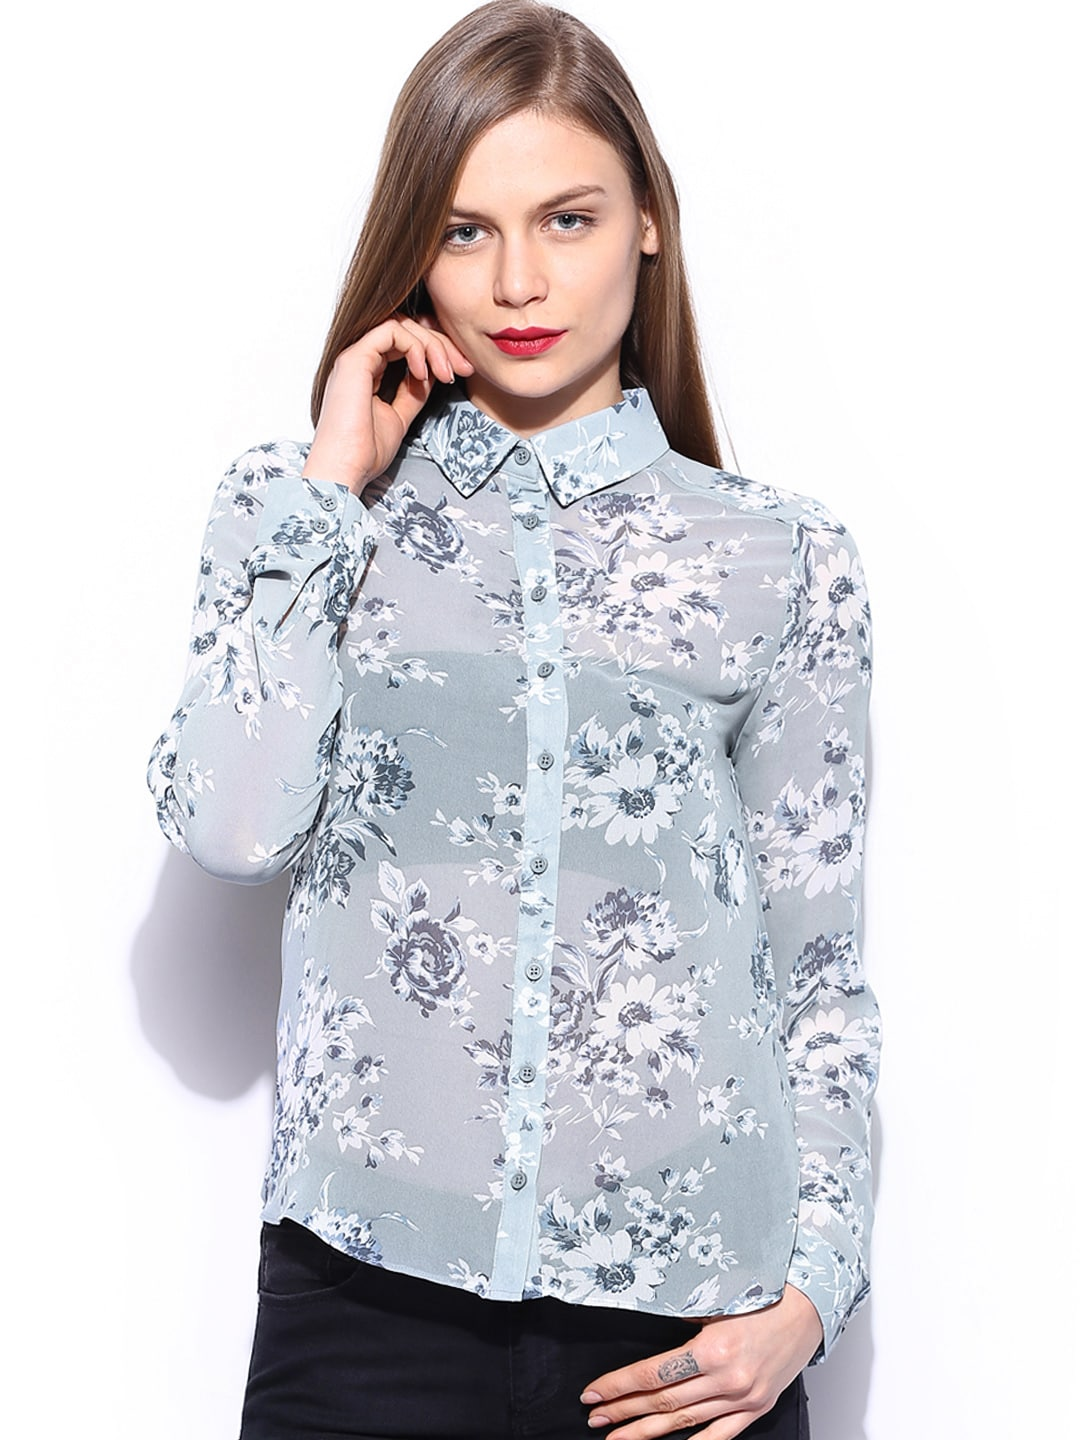 New Look Women Grey & Blue Floral Printed Shirt